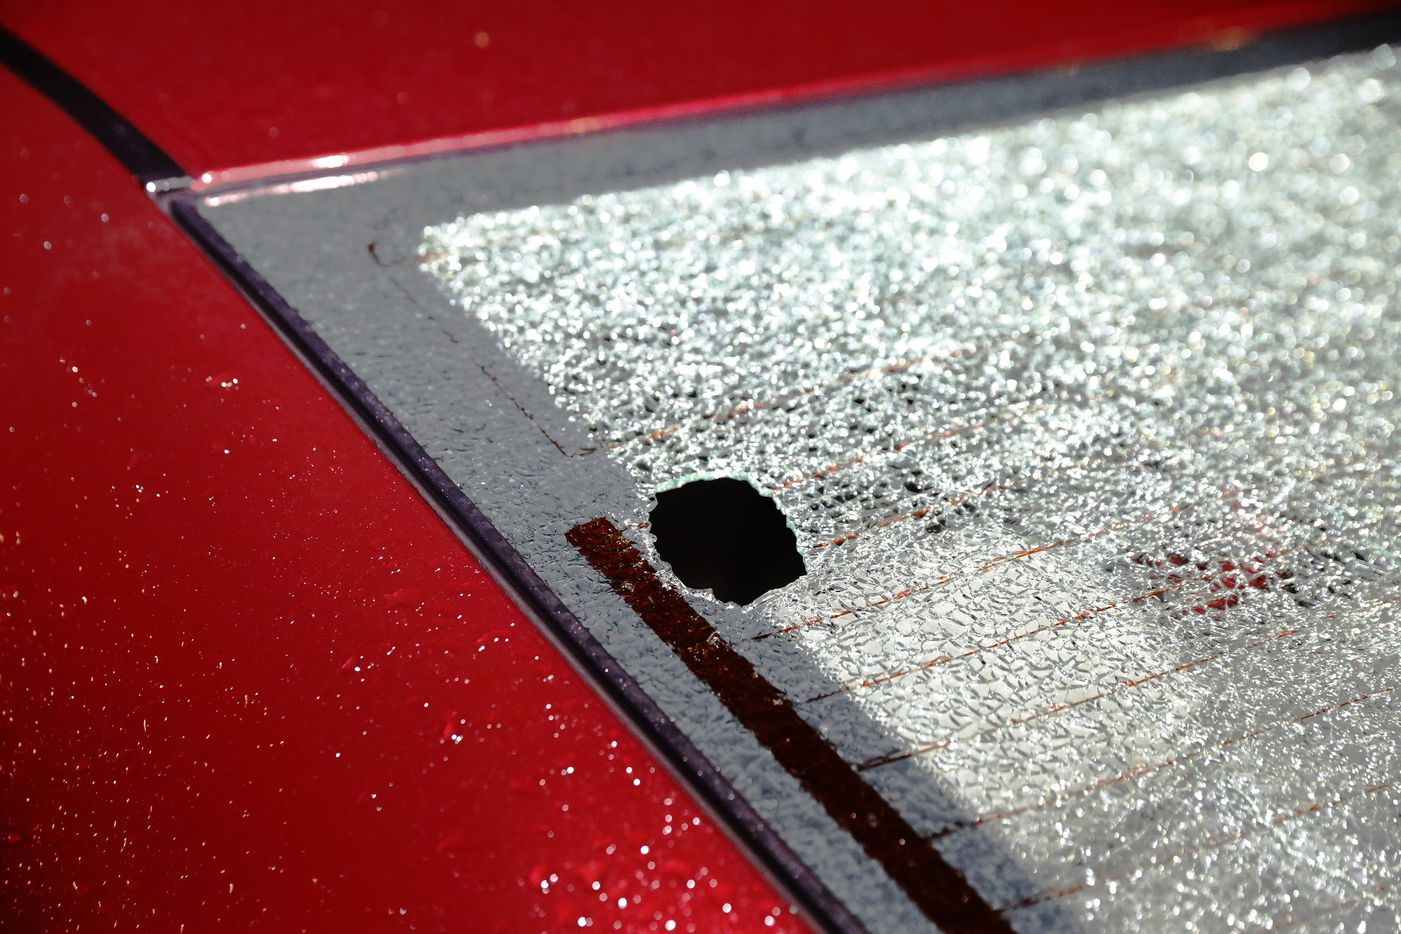 A vehicle's rear window was left shattered by hail on Meadow ridge Dr. in Prosper after a severe storm swept through the area on Friday April 21, 2017.